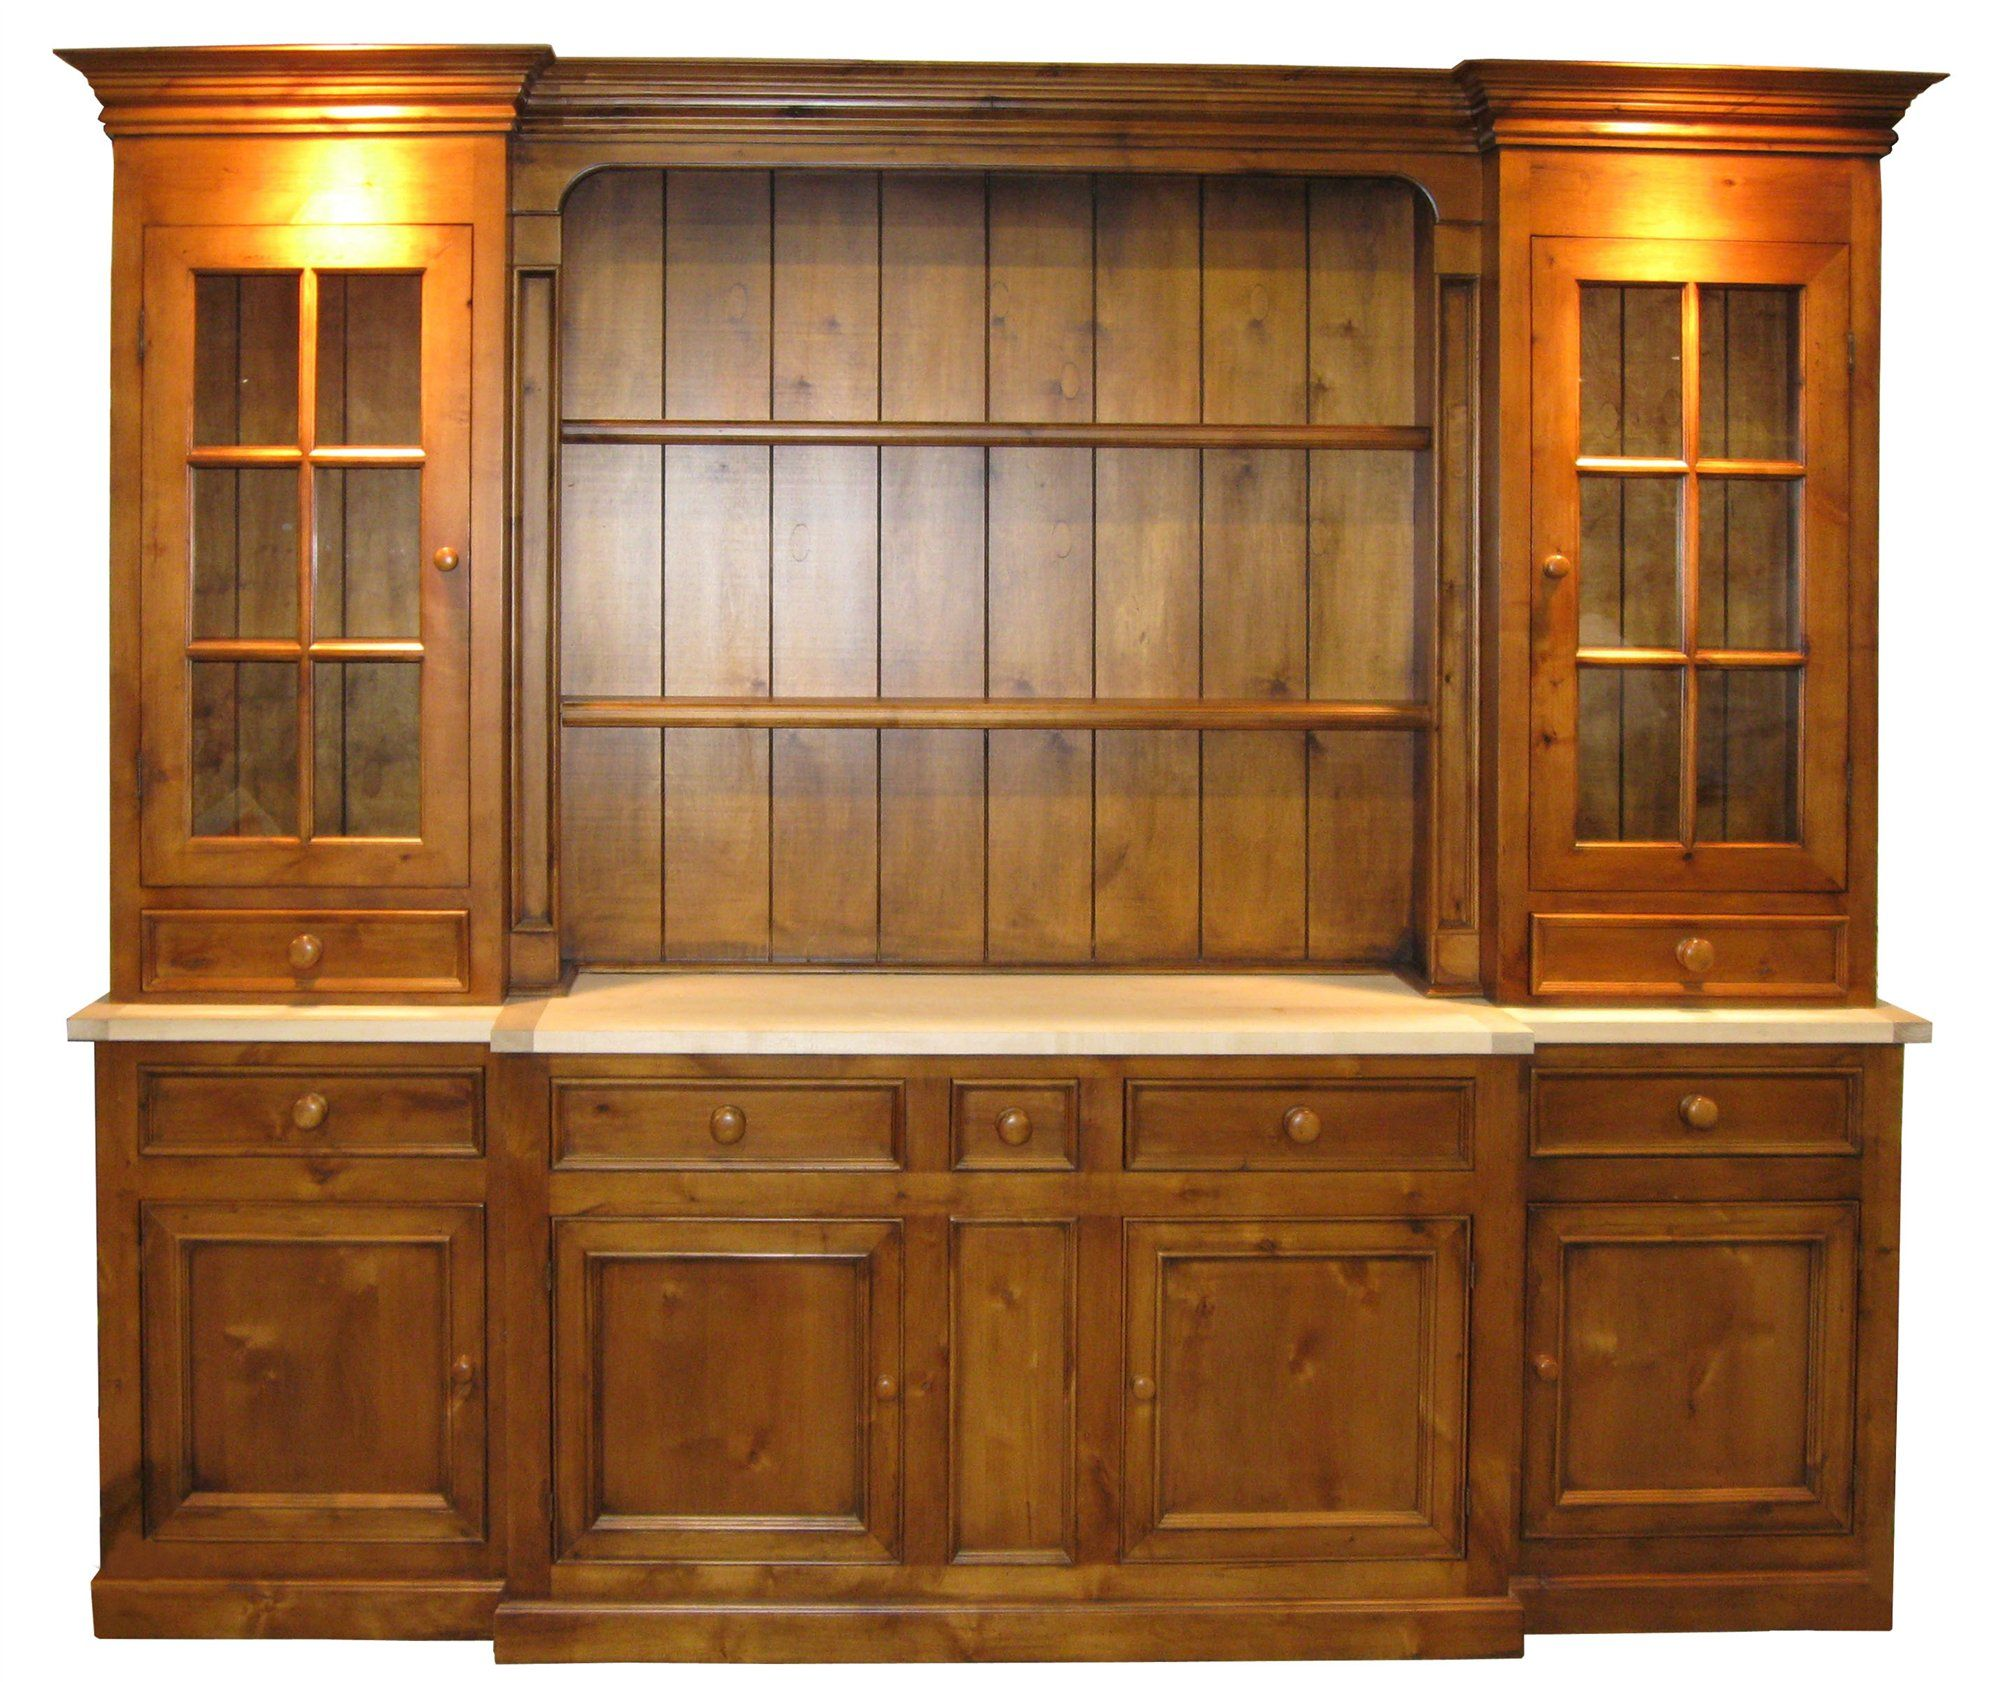 Picture of British Traditions Large 20-Section Sideboard